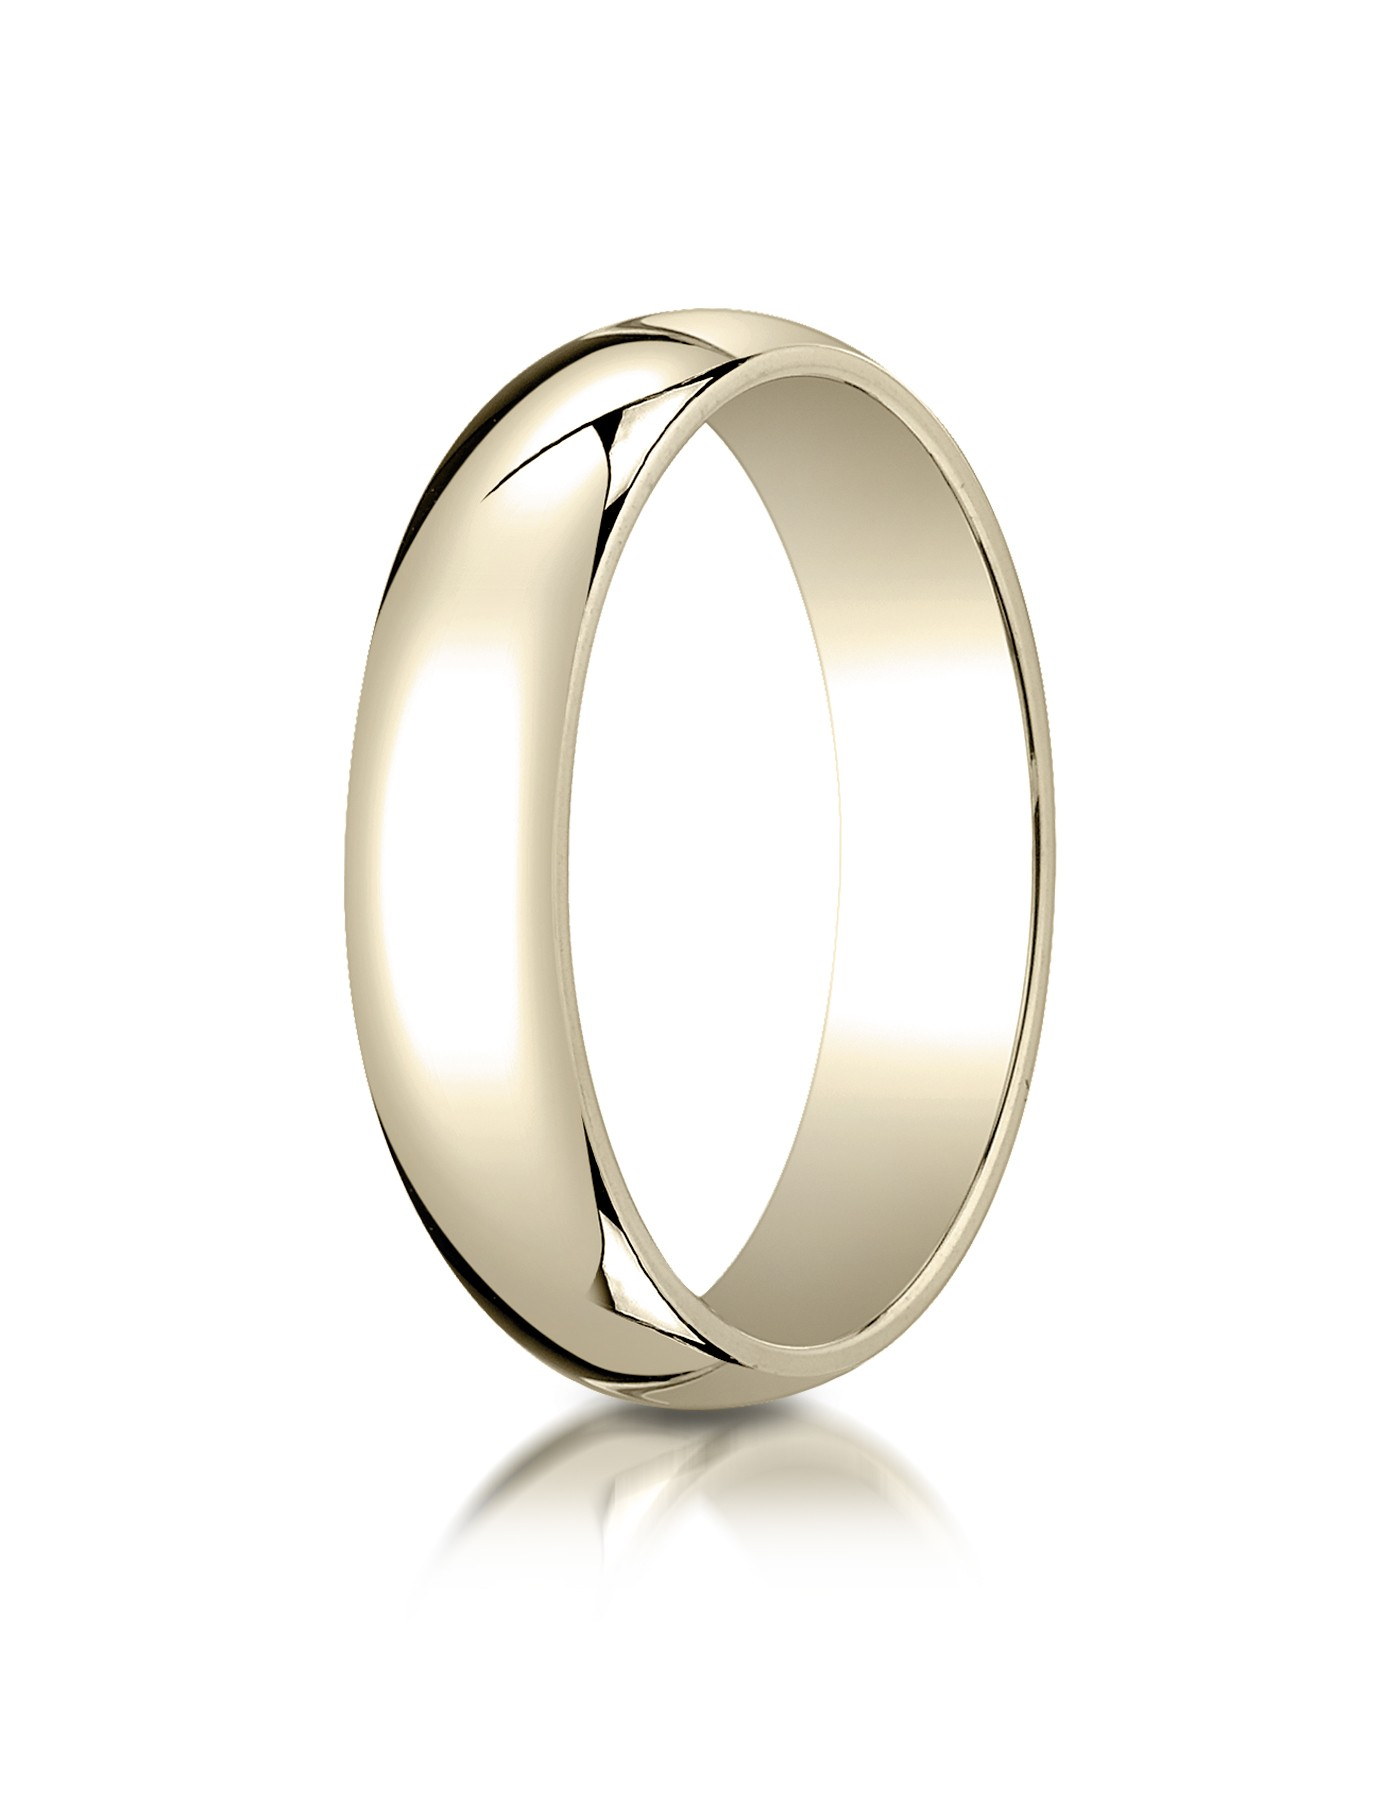 14k Yellow Gold 5mm Slightly Domed Traditional Oval Ring